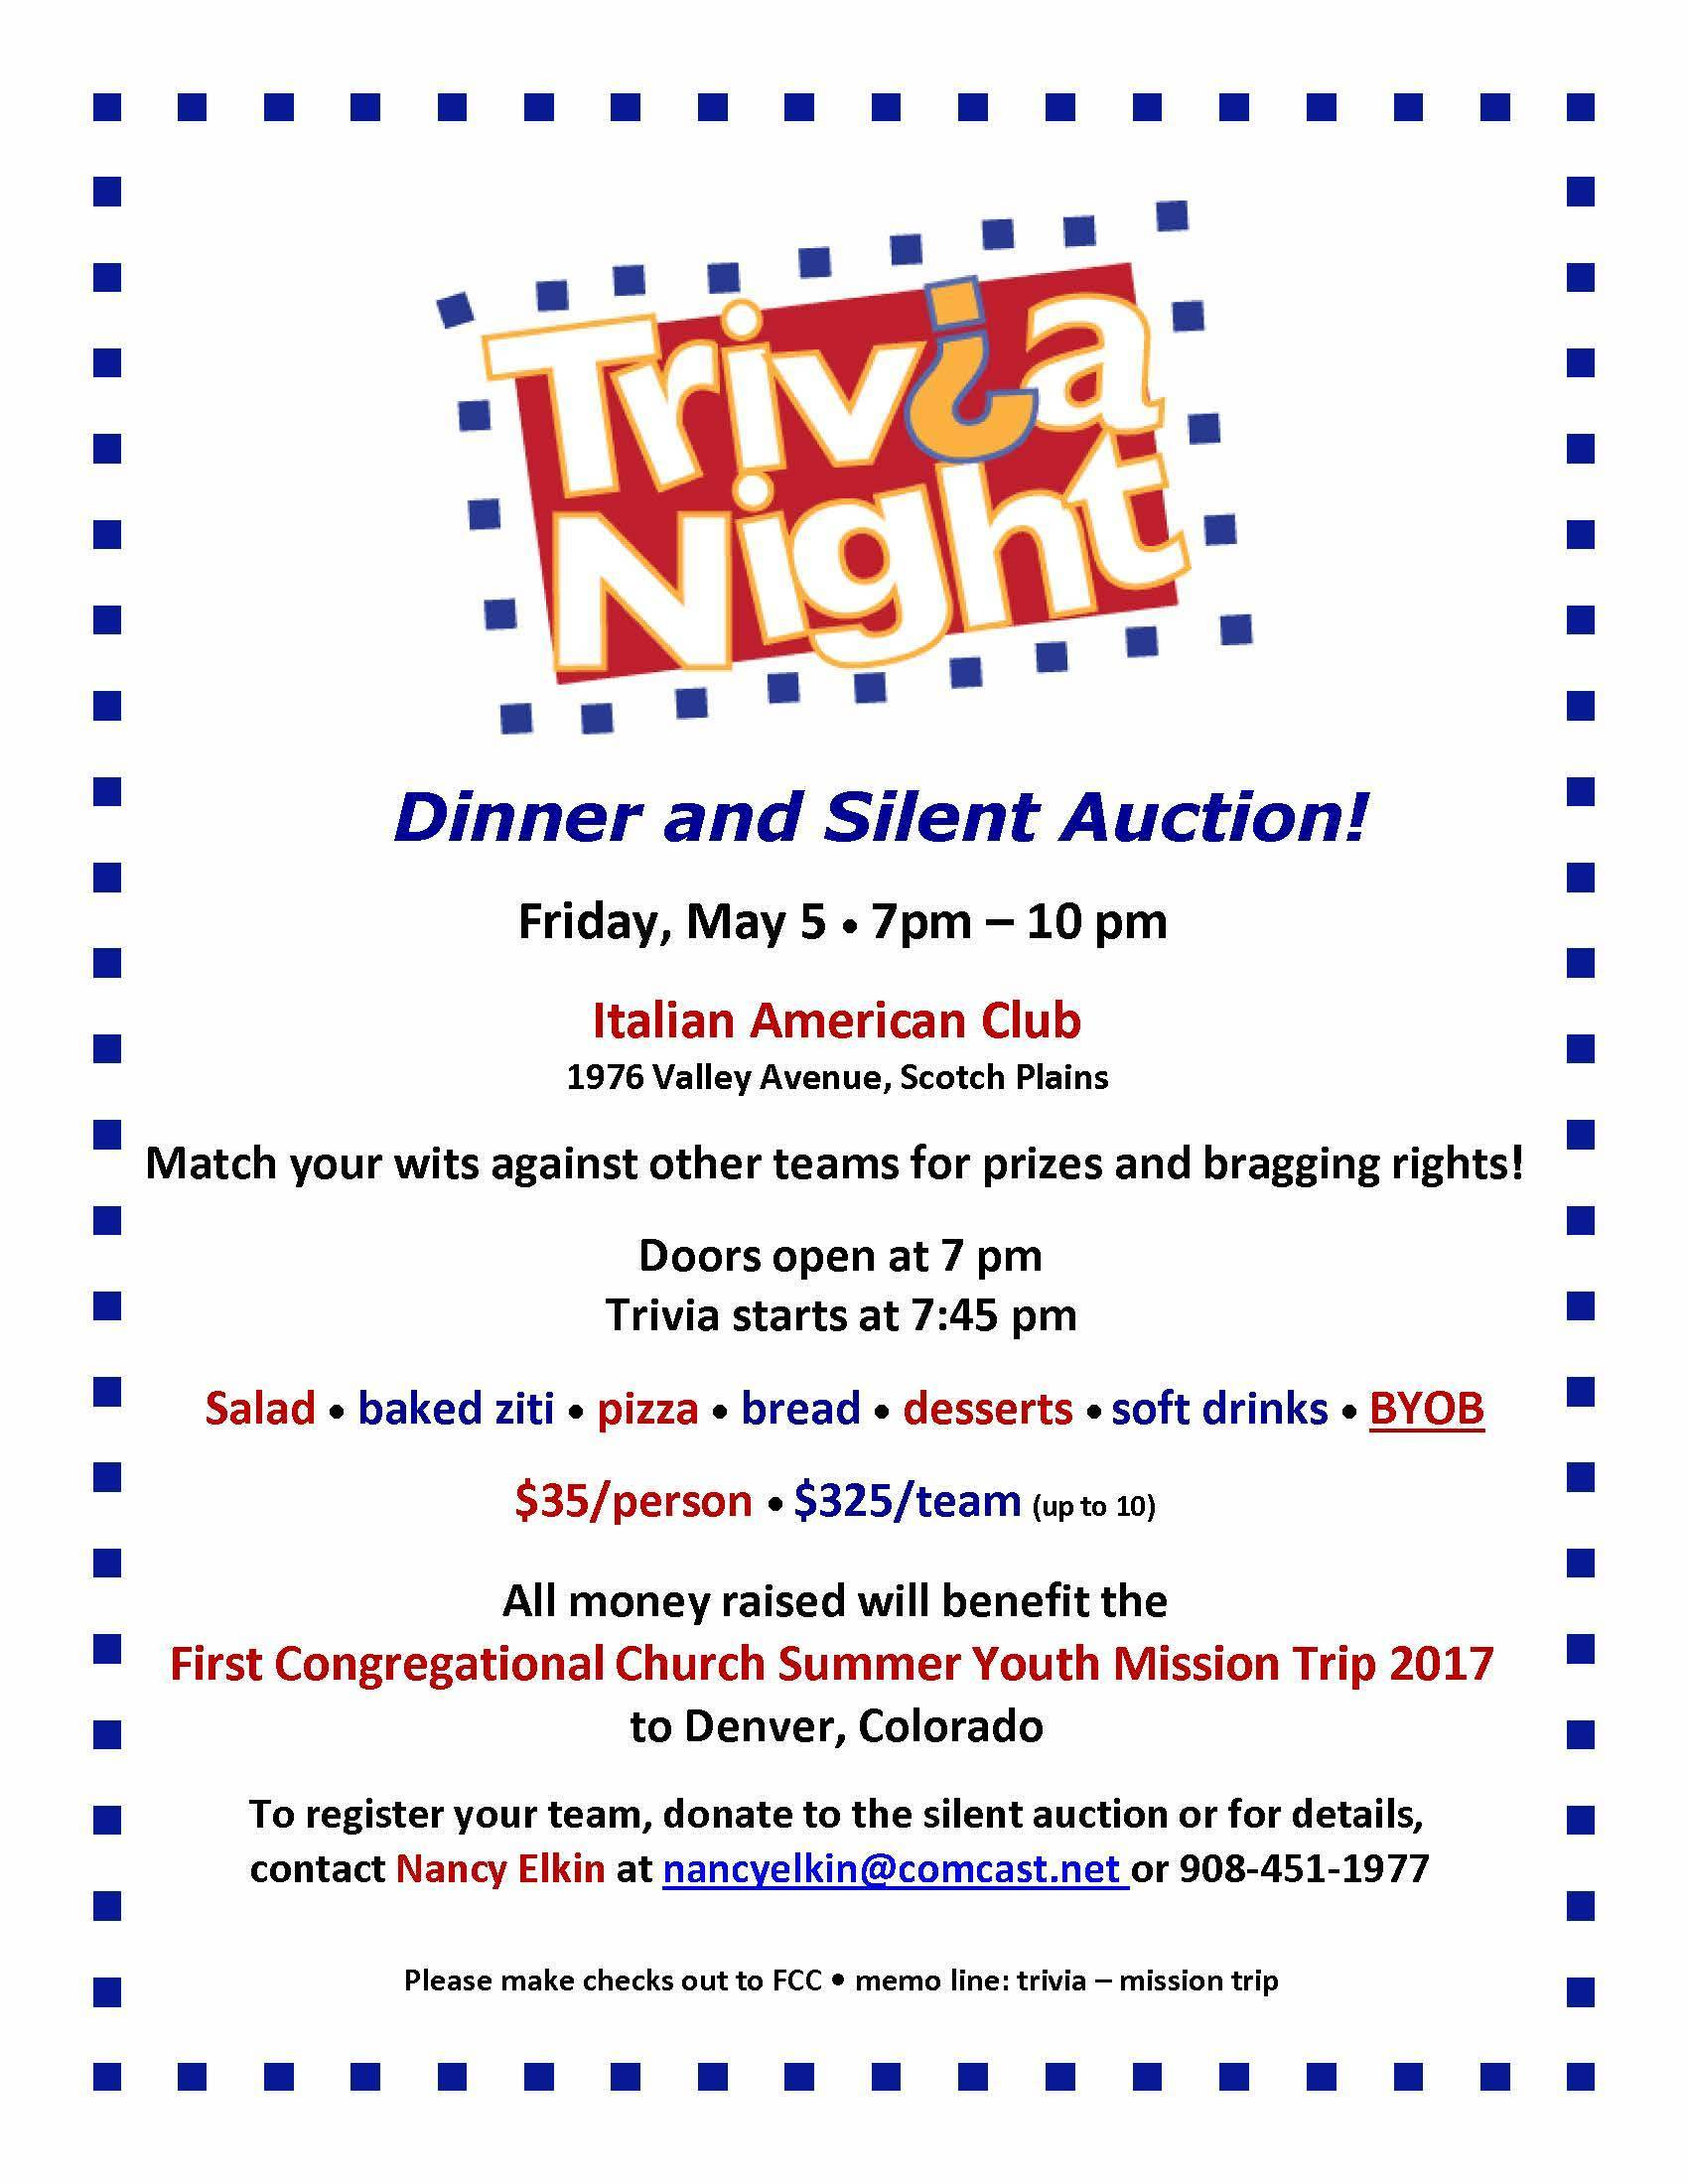 050afade4267c63d8d36_Dinner_and_Silent_Auction_flyer_2.jpg